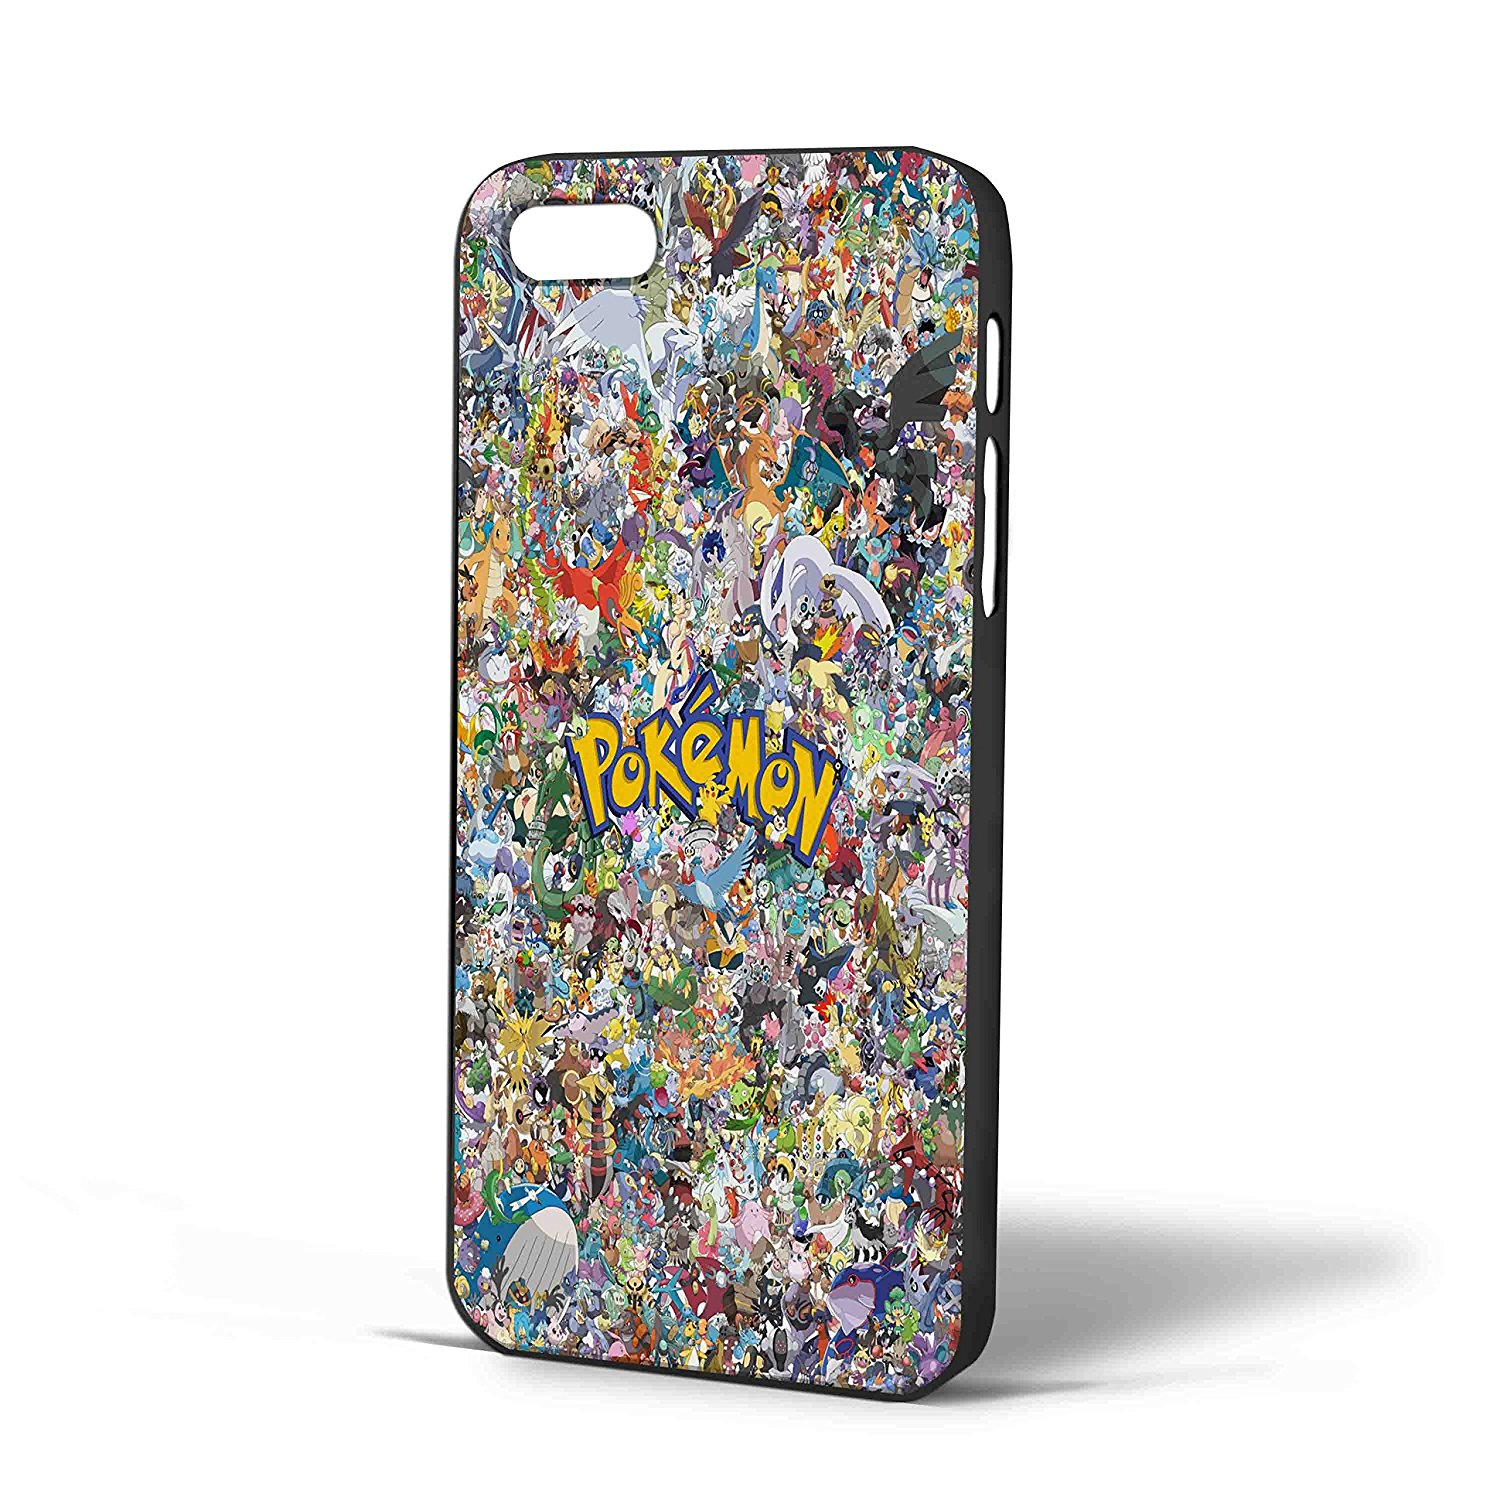 Ganma All Charakter Pokemon Case For iPhone Case (Case For iPhone 6s plus White)